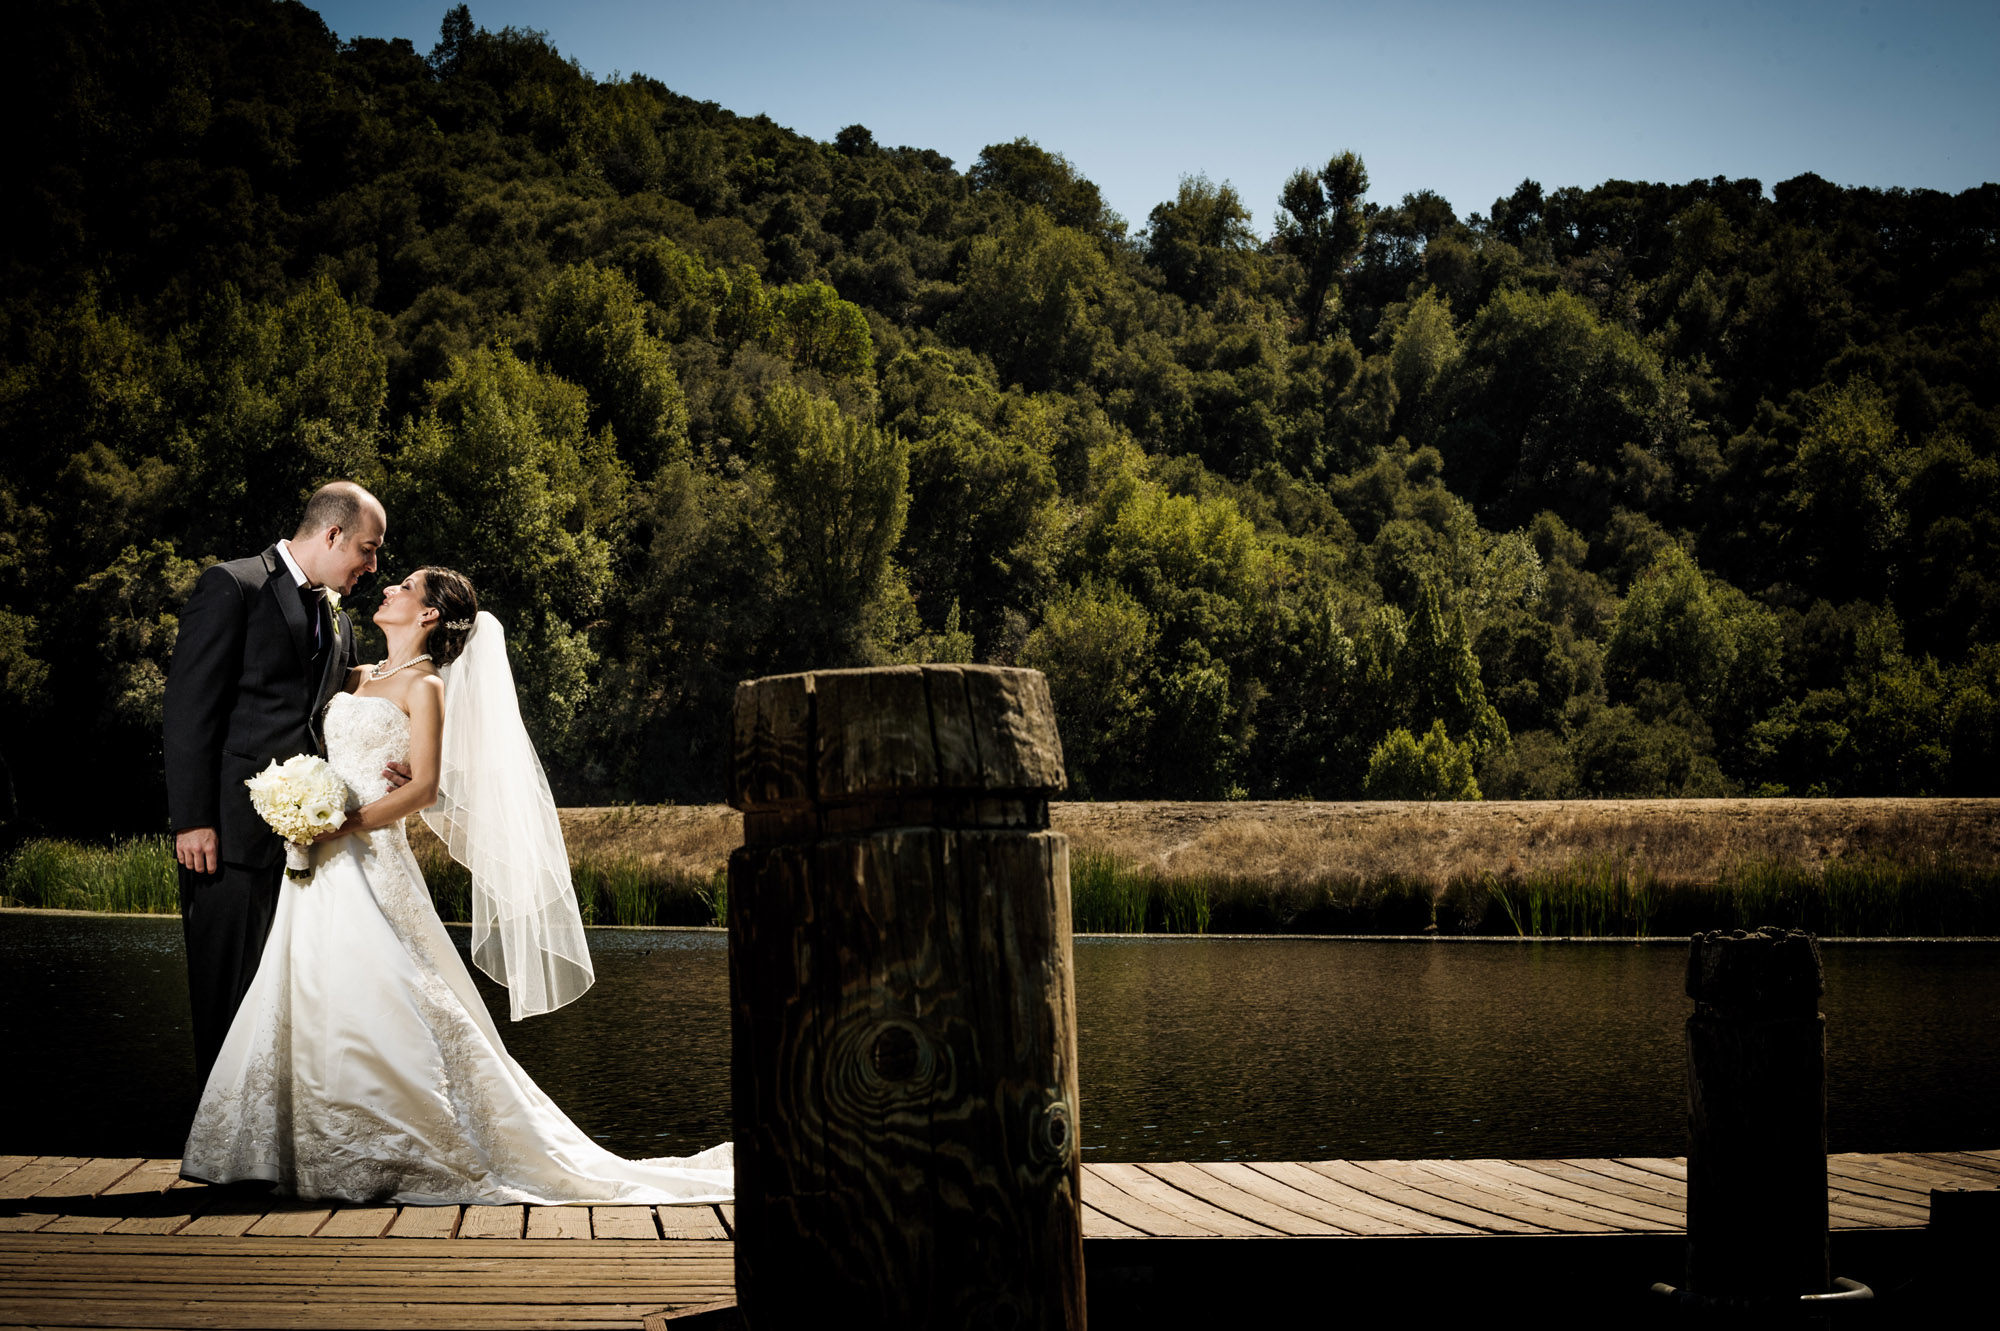 8437-d3_Lilly_and_Chris_Crowne_Plaza_Cabana_Hotel_Palo_Alto_Wedding_Photography.jpg